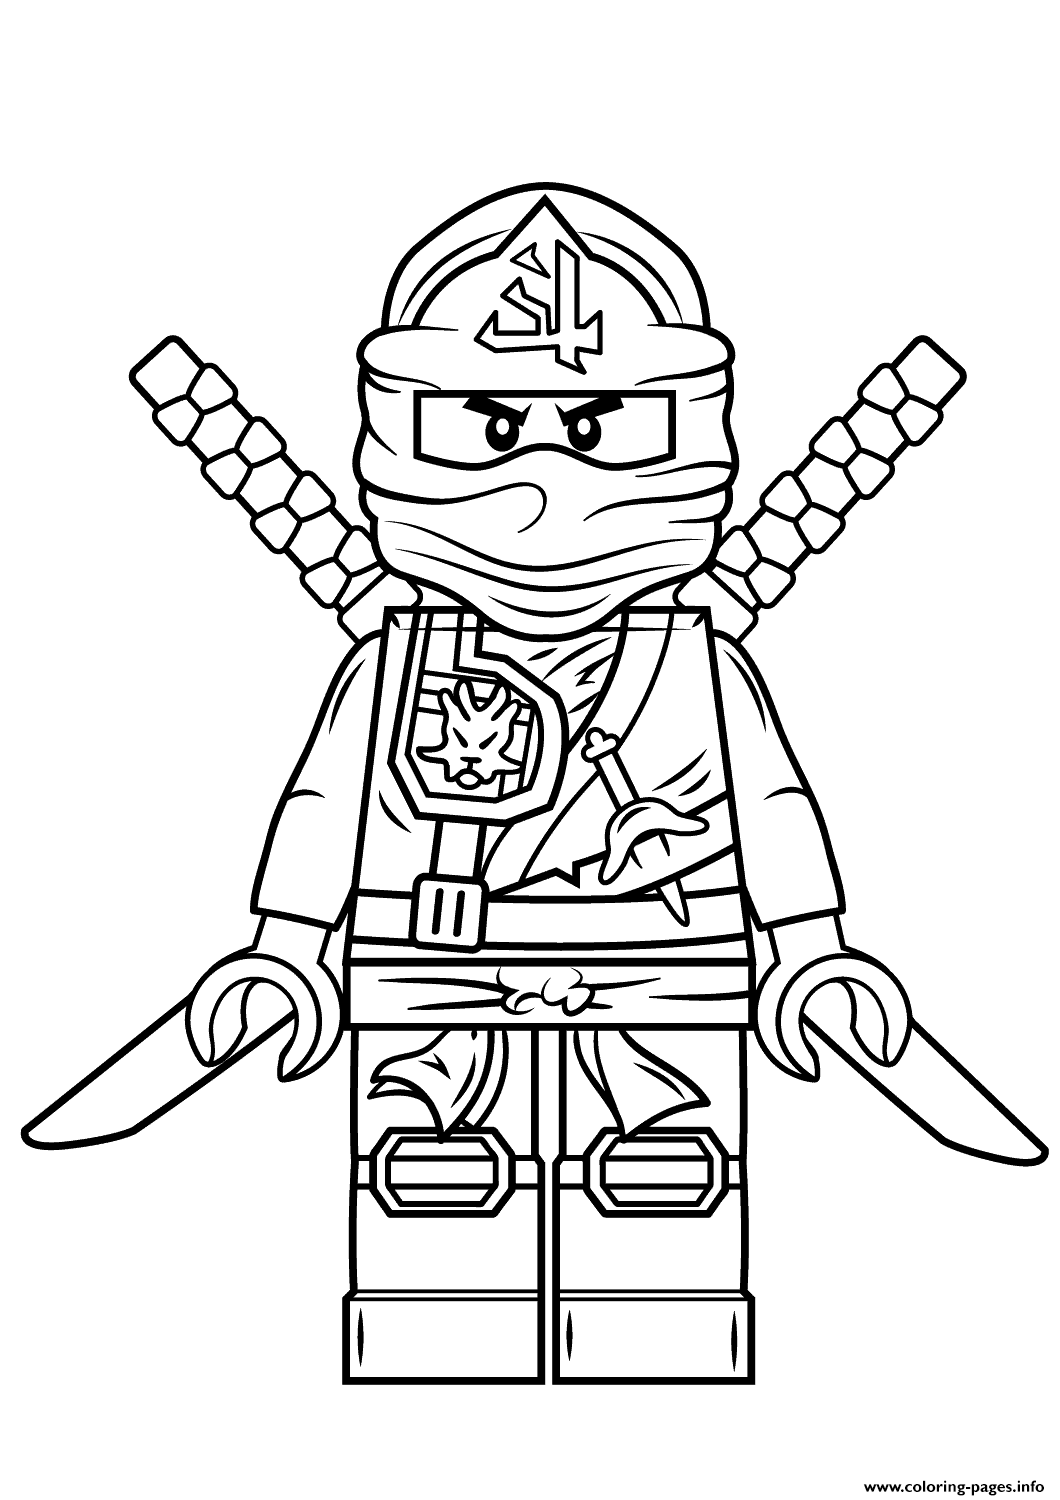 Print Lego Ninjago Green Ninja Coloring Pages Lego Coloring Pages Ninjago Coloring Pages Lego Coloring